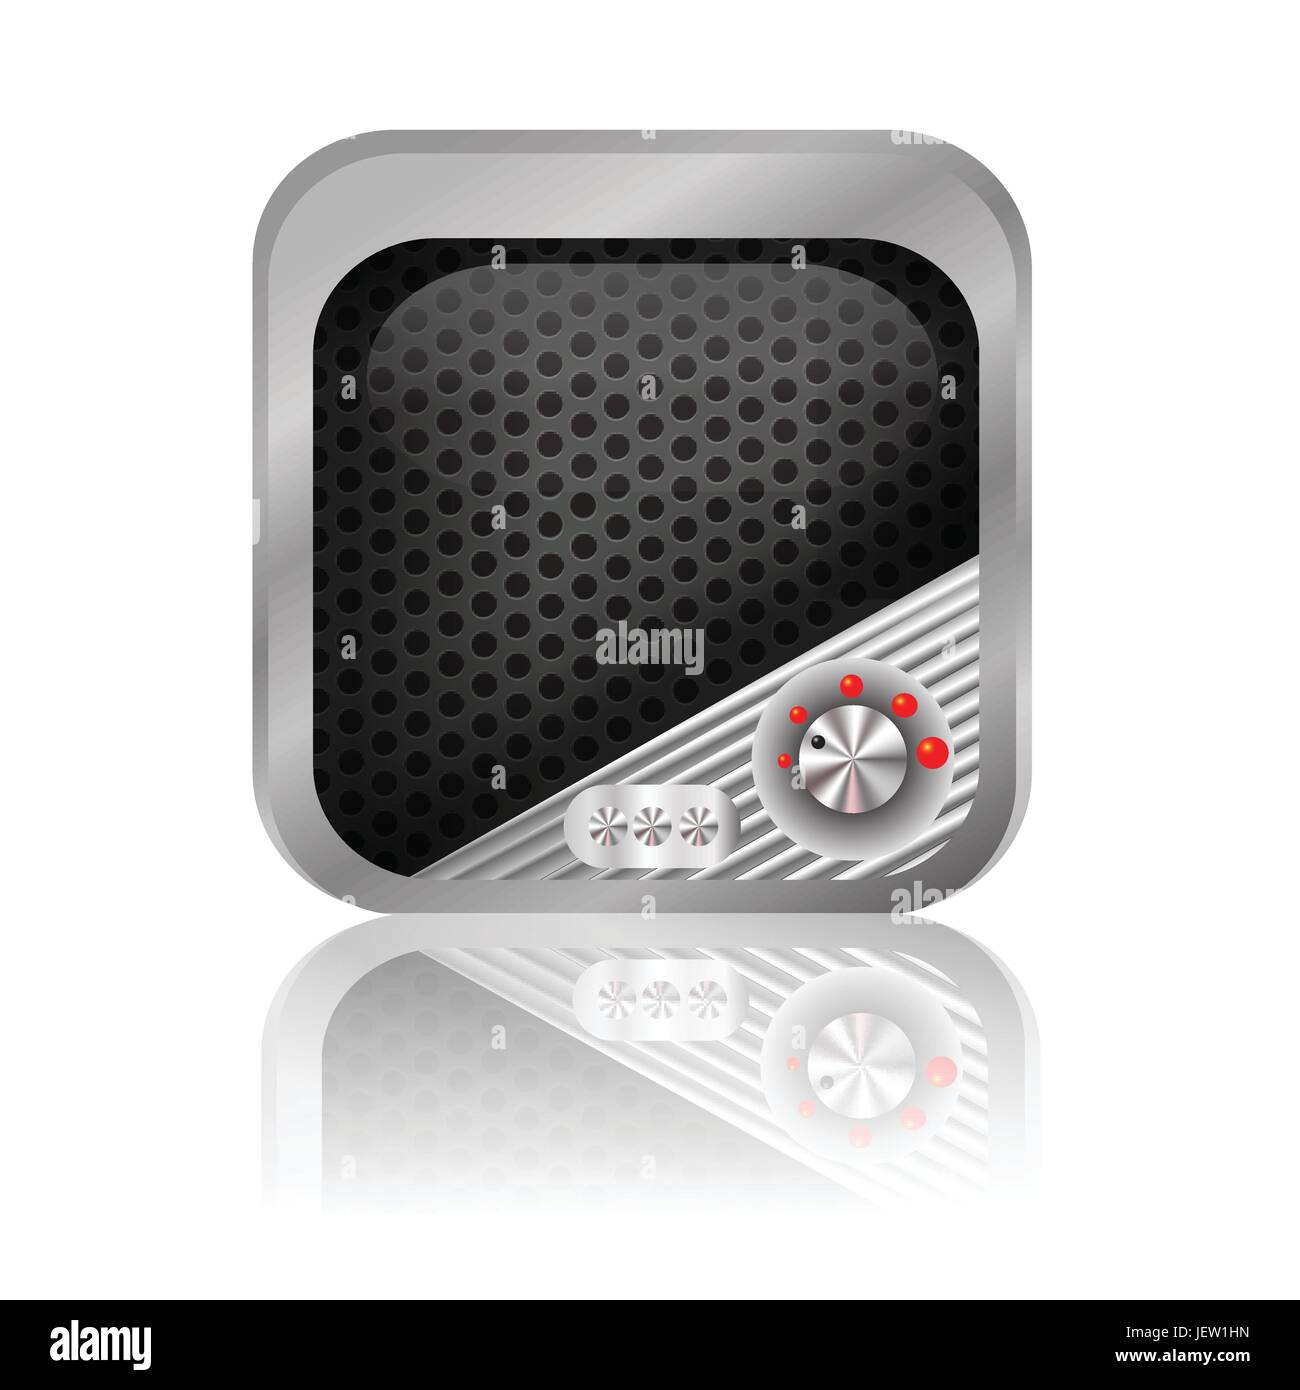 button, level, icon, control, volume, shaddow, shadow, application, sound, - Stock Image